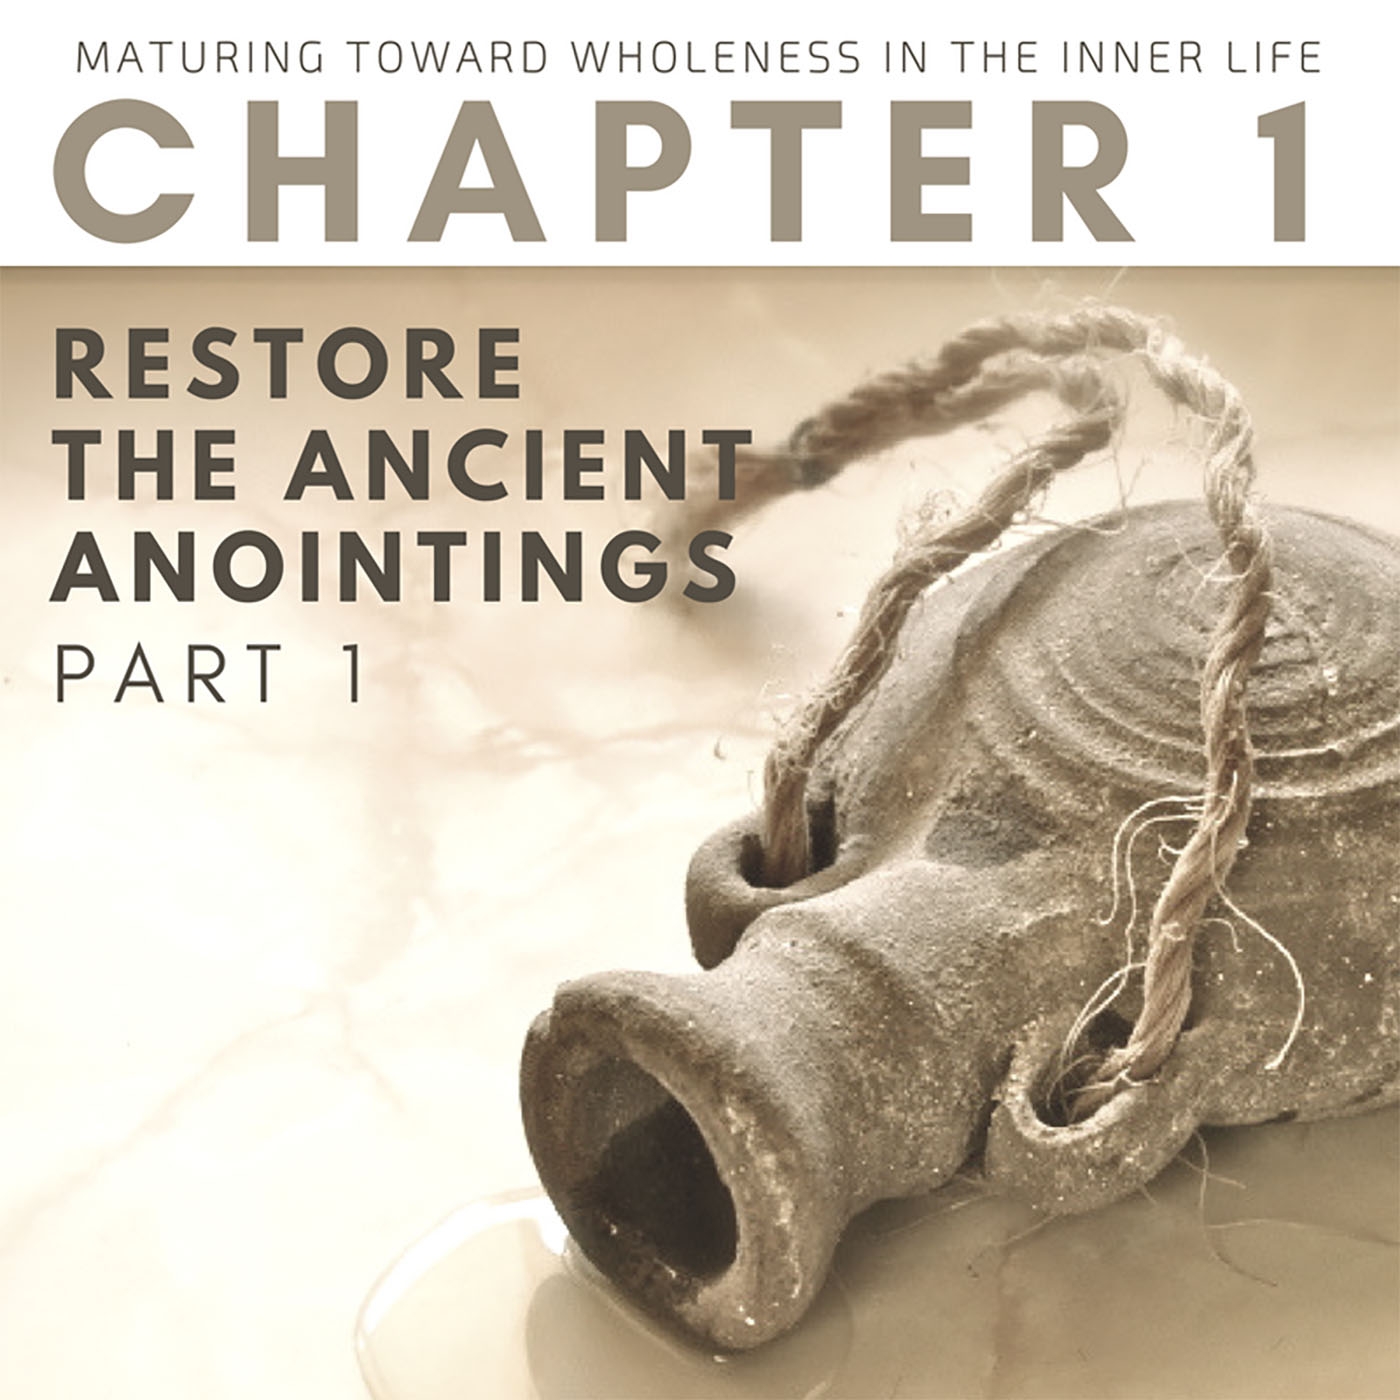 Restore the Ancient Anointings (1 of 3)